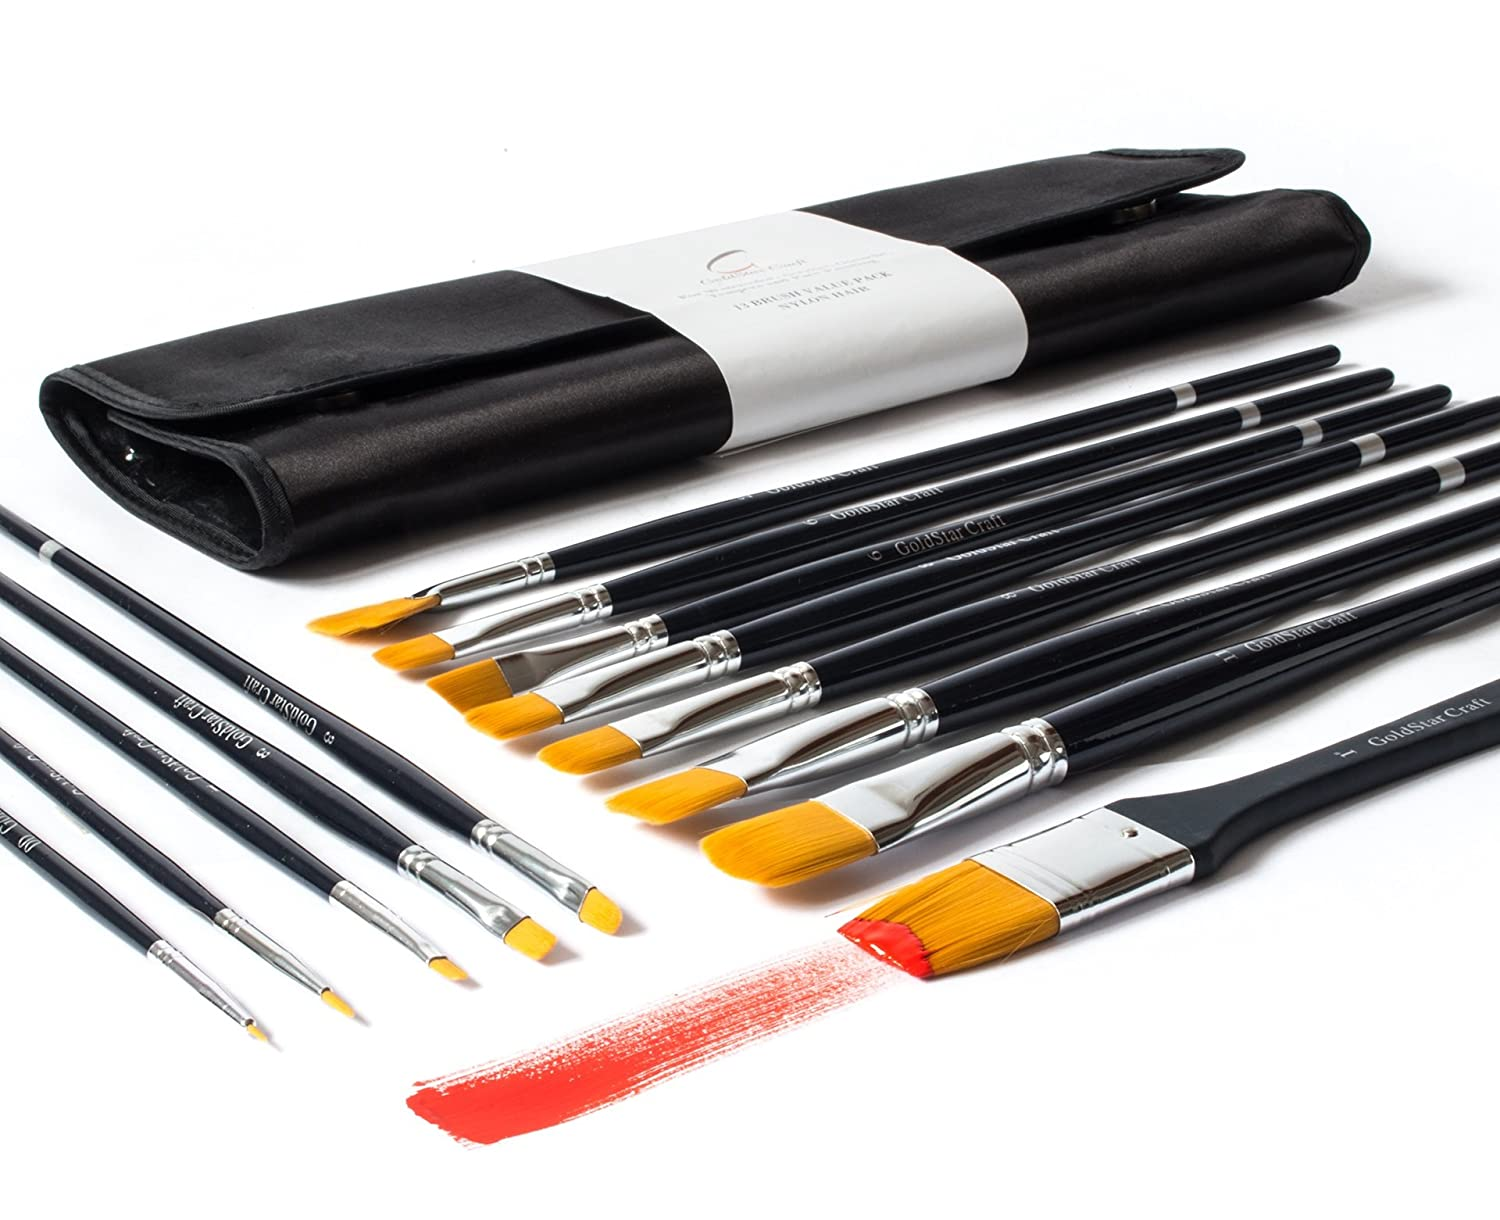 13pcs Paint Brush Set By Goldstar Craft - Art Supplies for Acrylic, Watercolor, & Face Painting - Professional Quality Kit